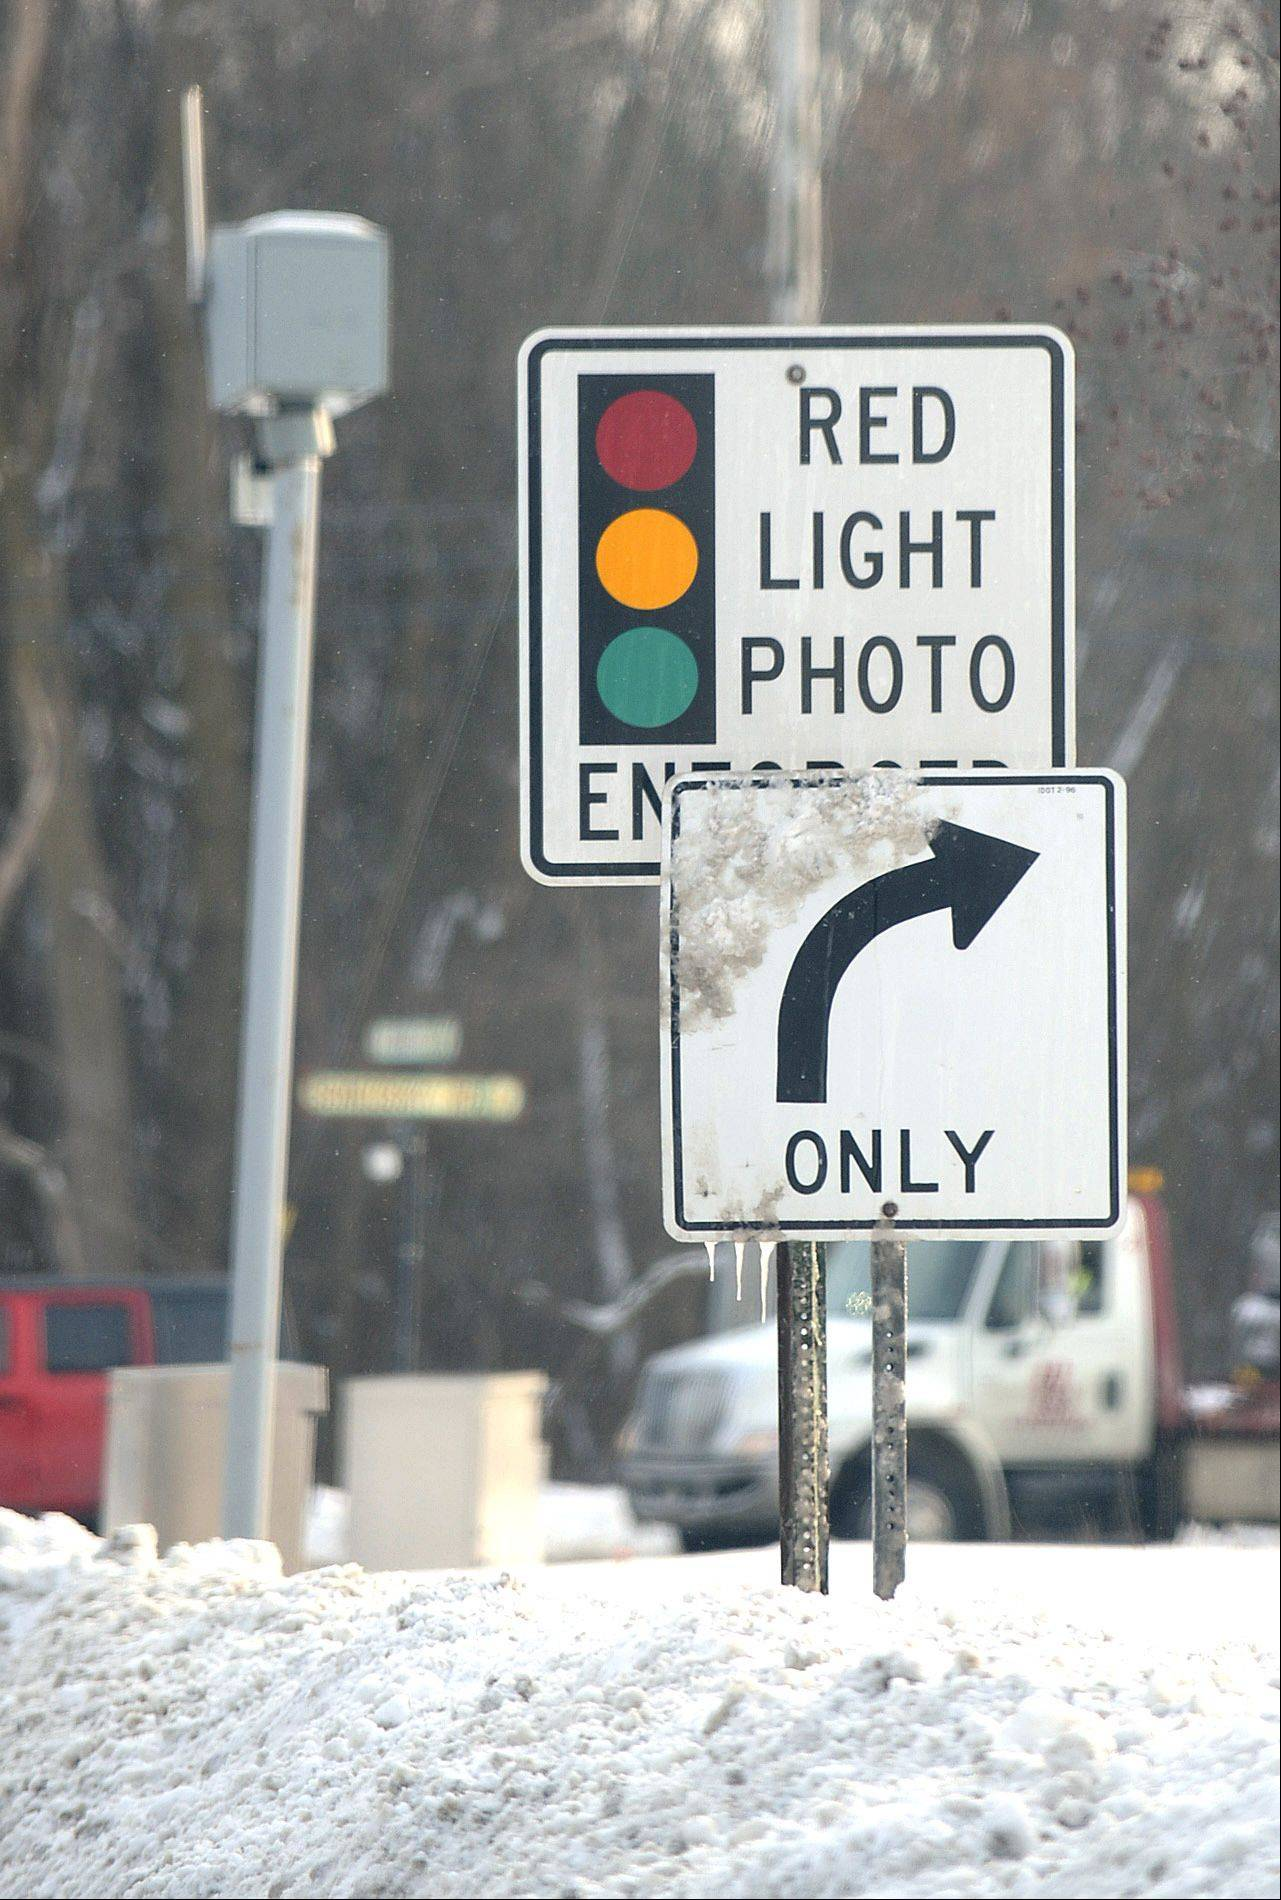 West Dundee leaders this week opted to keep using red light cameras, like the one here at southbound Boncosky Road and Route 31.